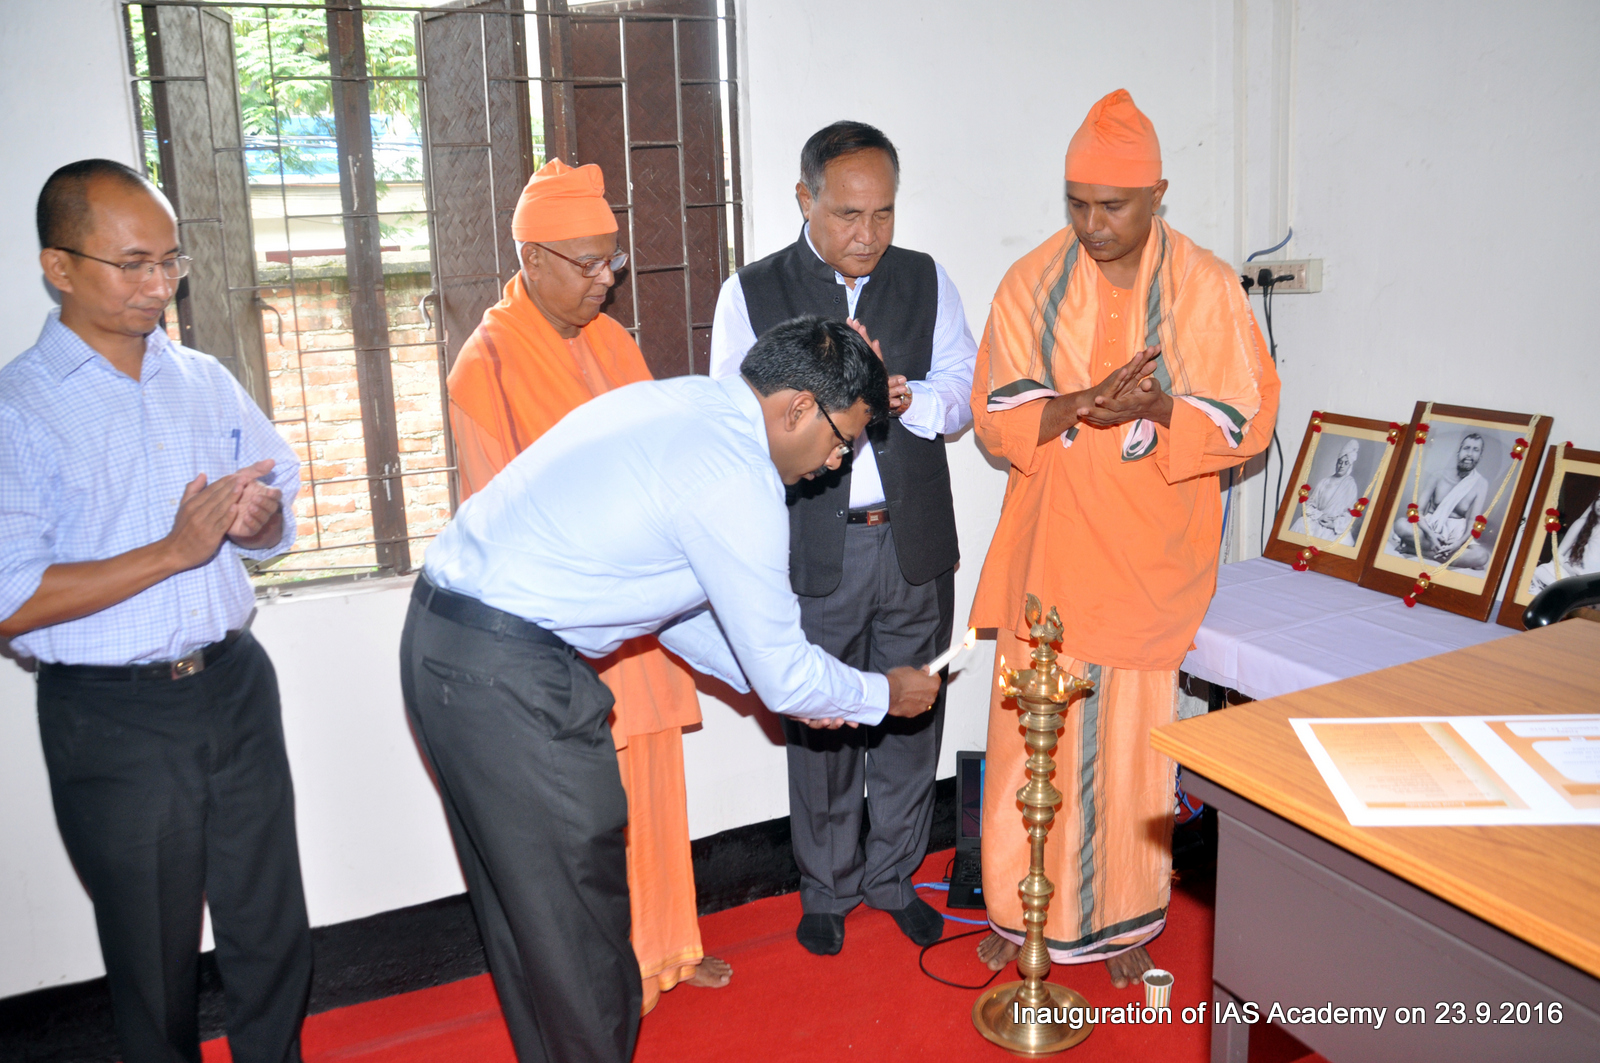 Inauguration of IAS Academy at Babupara Campus